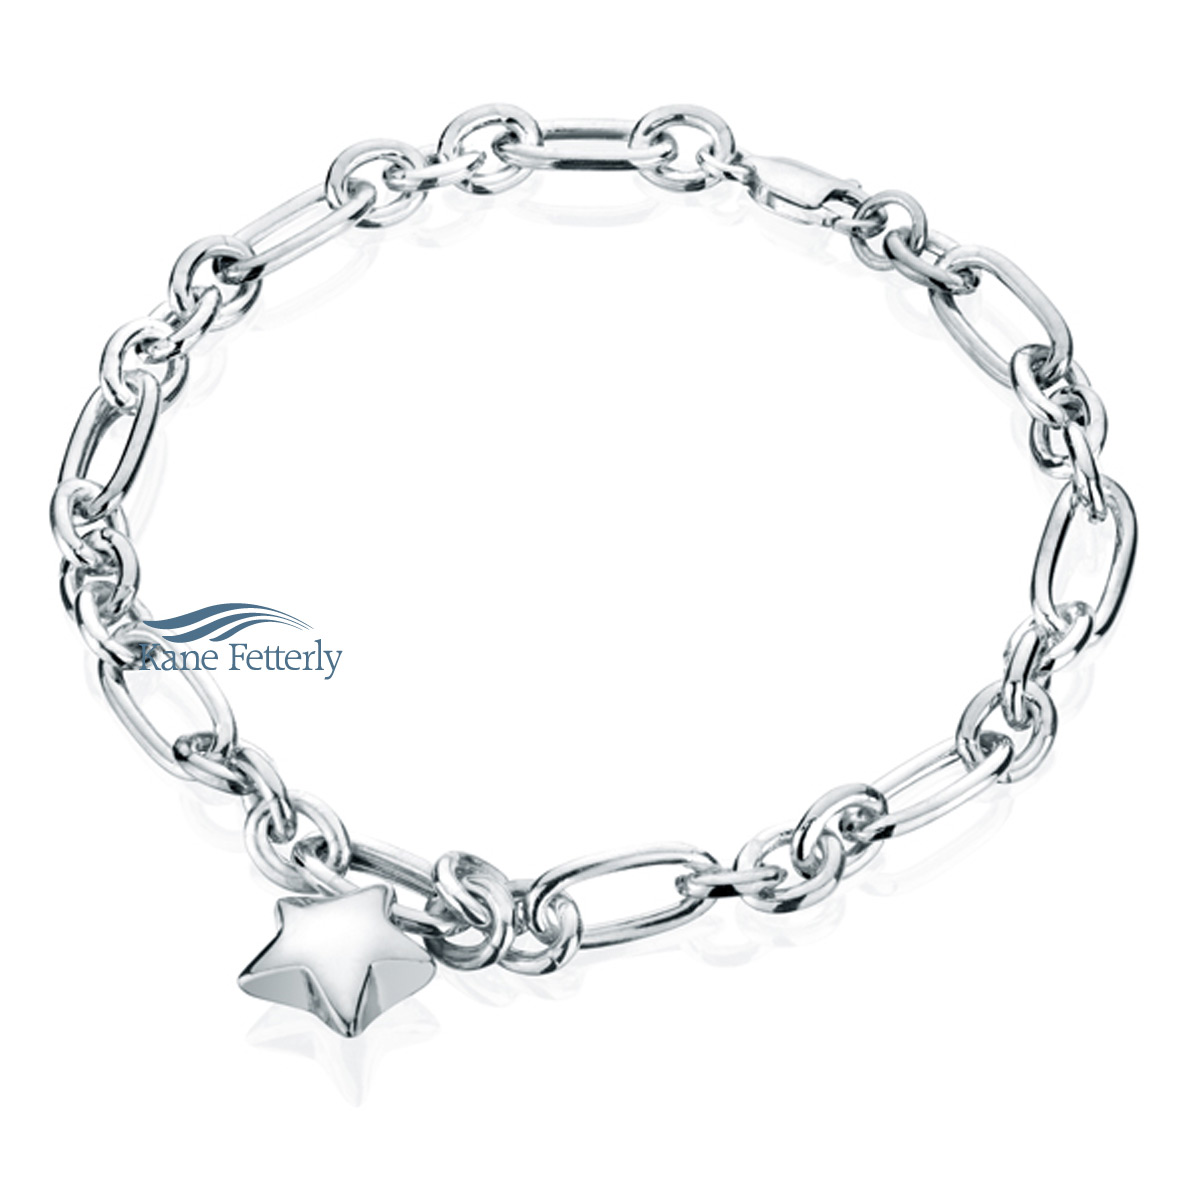 J0072 Sterling silver bracelet with star charm